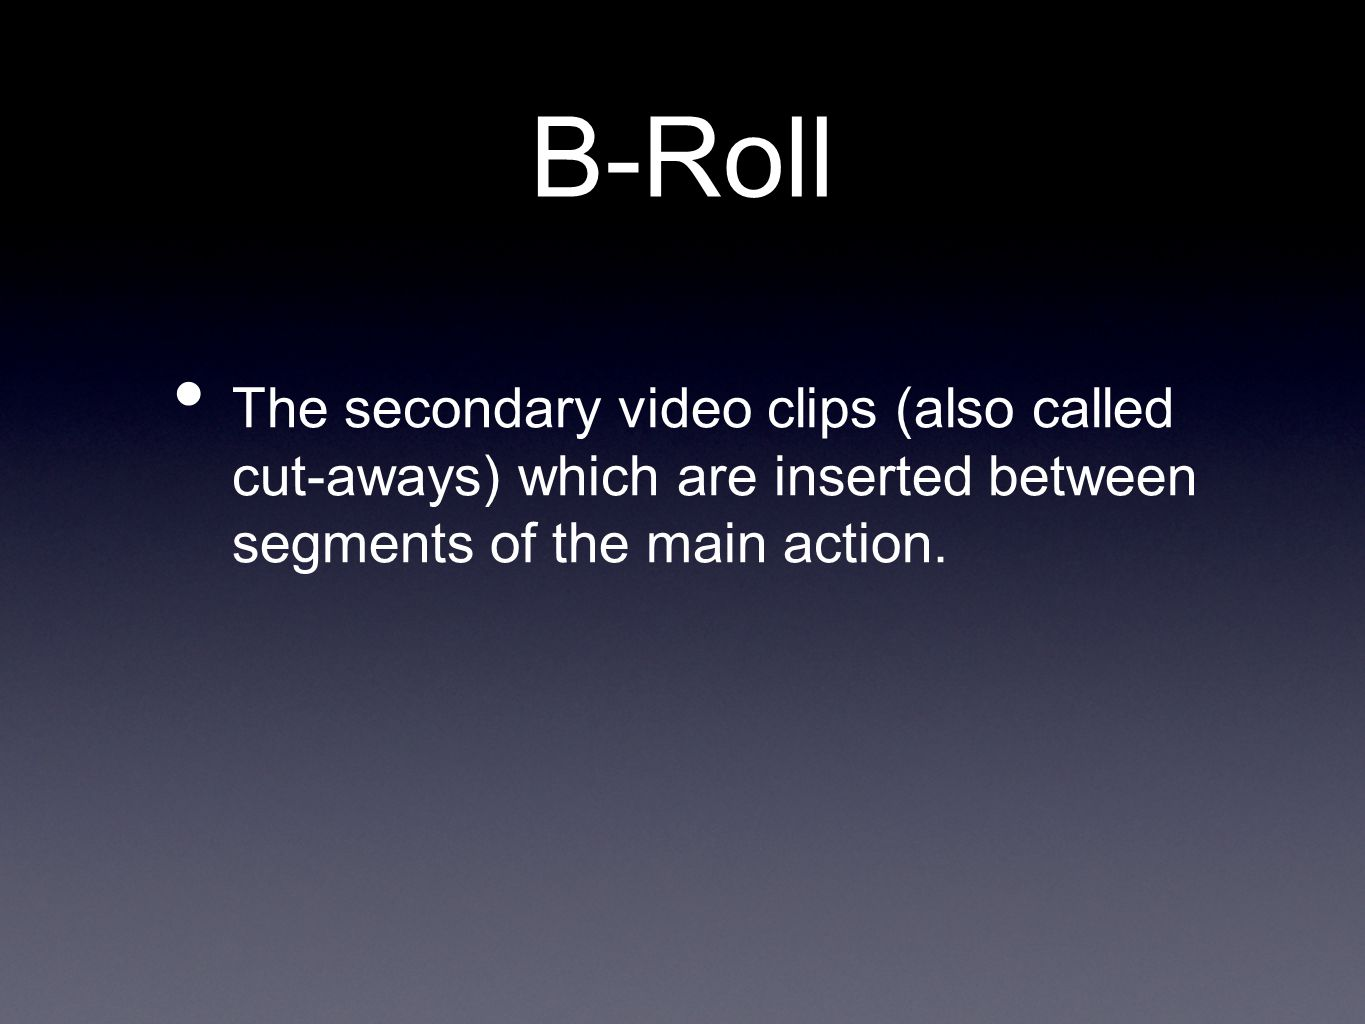 B-Roll The secondary video clips (also called cut-aways) which are inserted between segments of the main action.